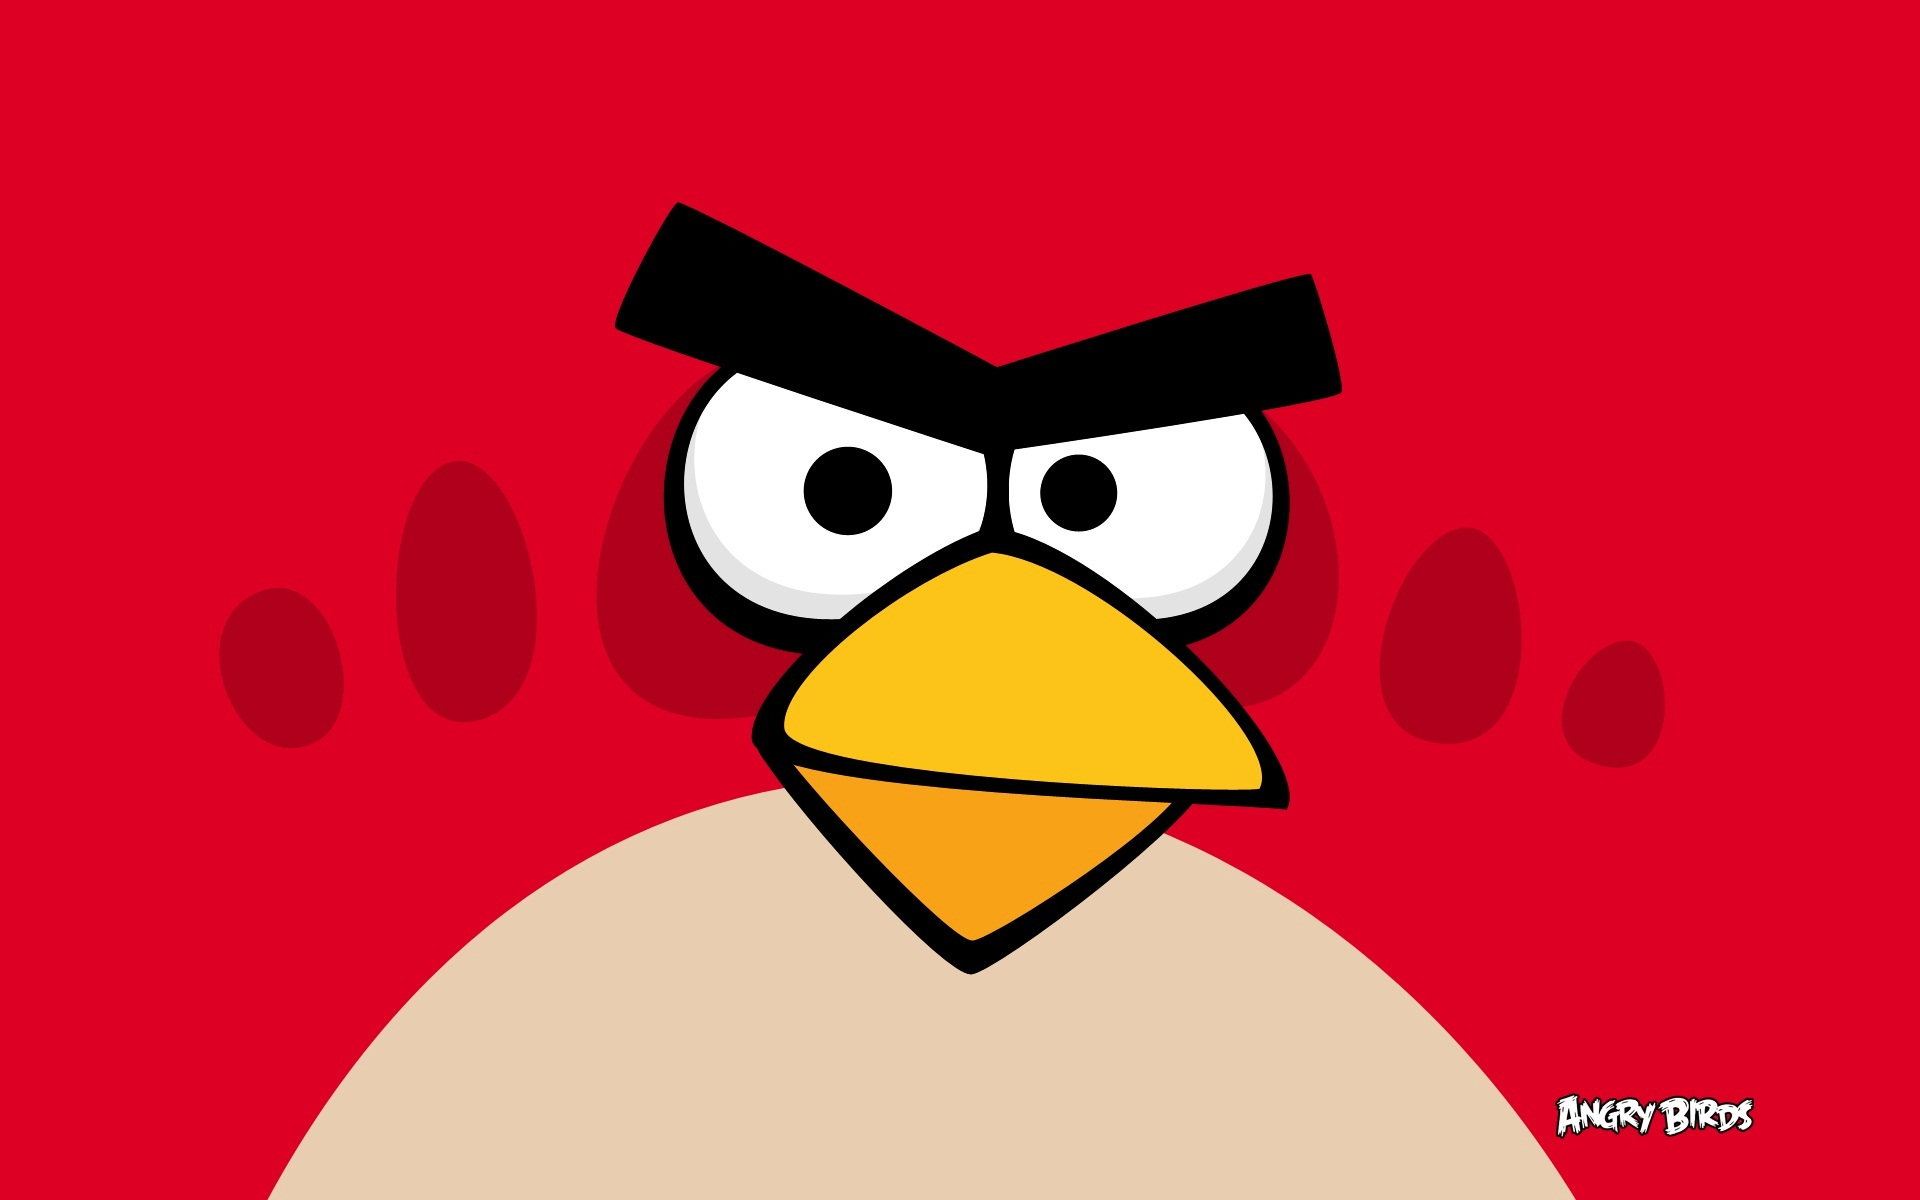 Angry Birds Wallpapers HD Wallpapers 1920x1200